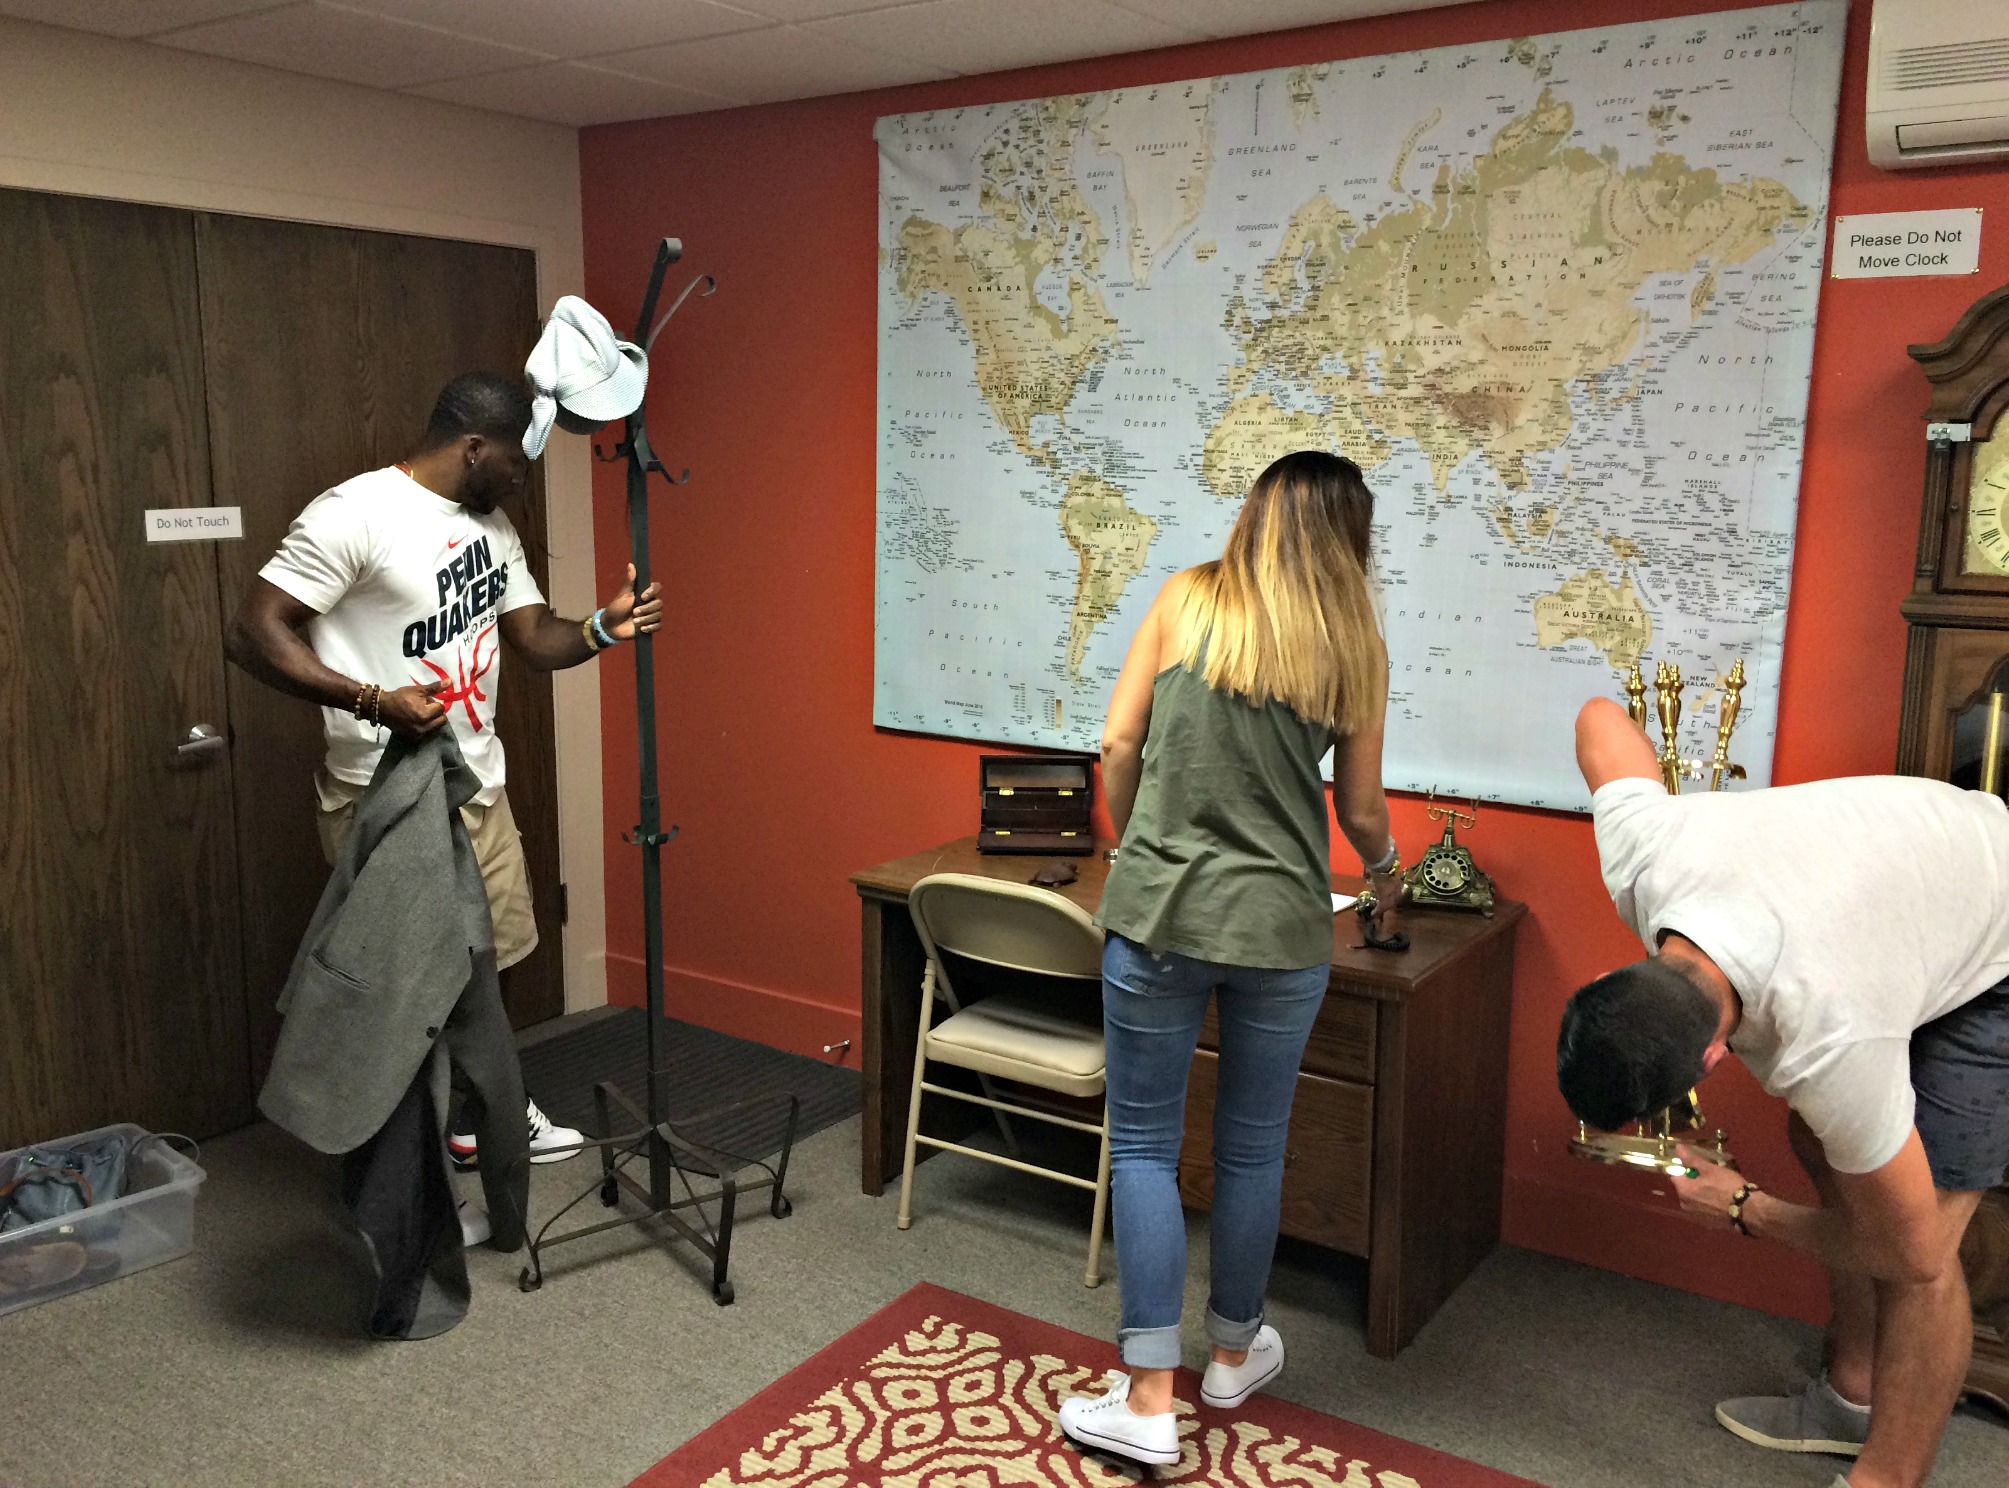 The Great Escape Room game